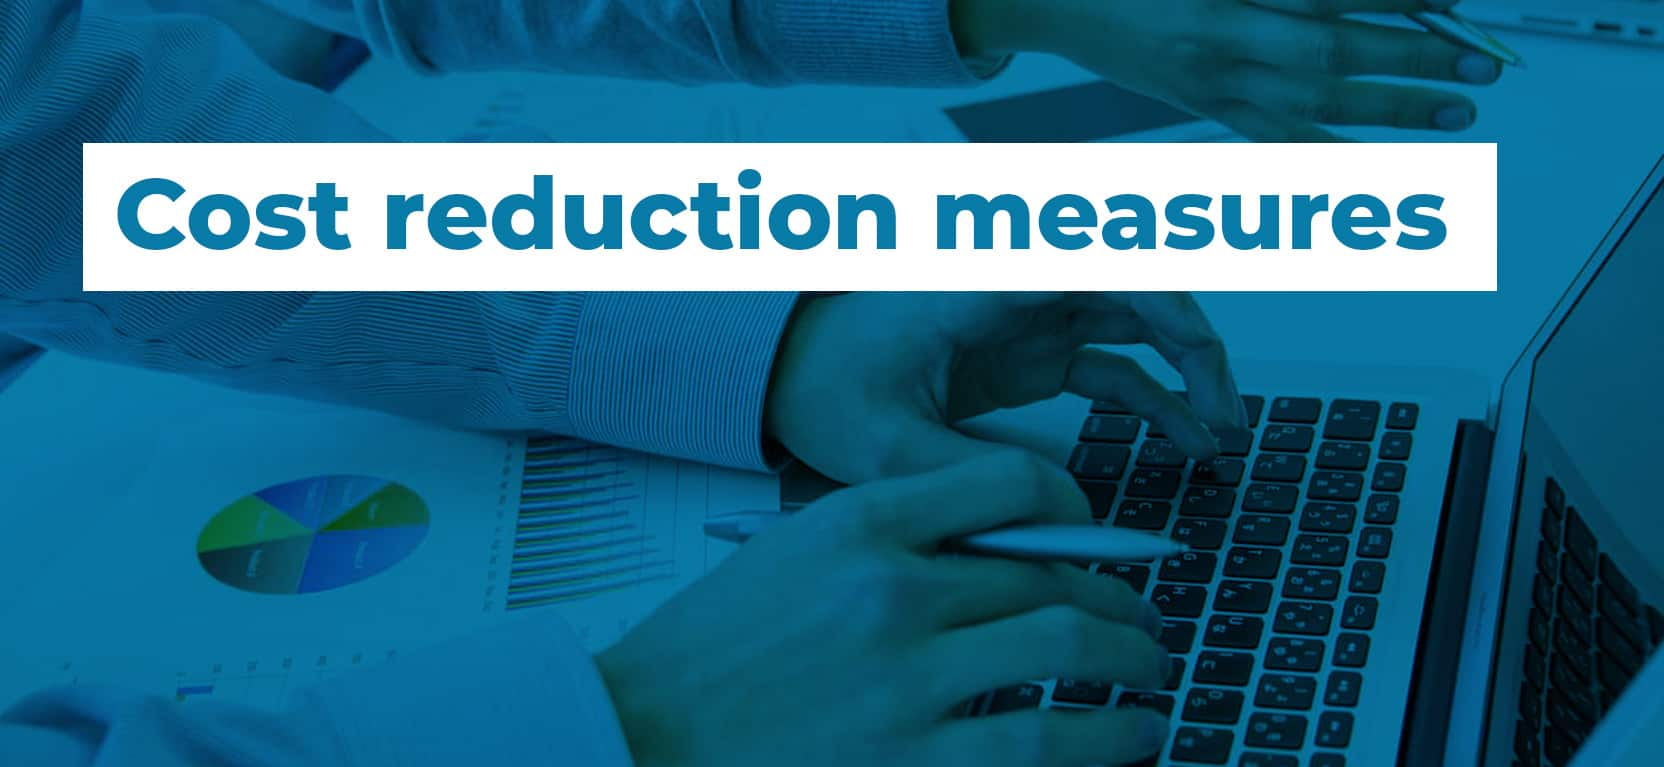 07 Cost reduction measures2